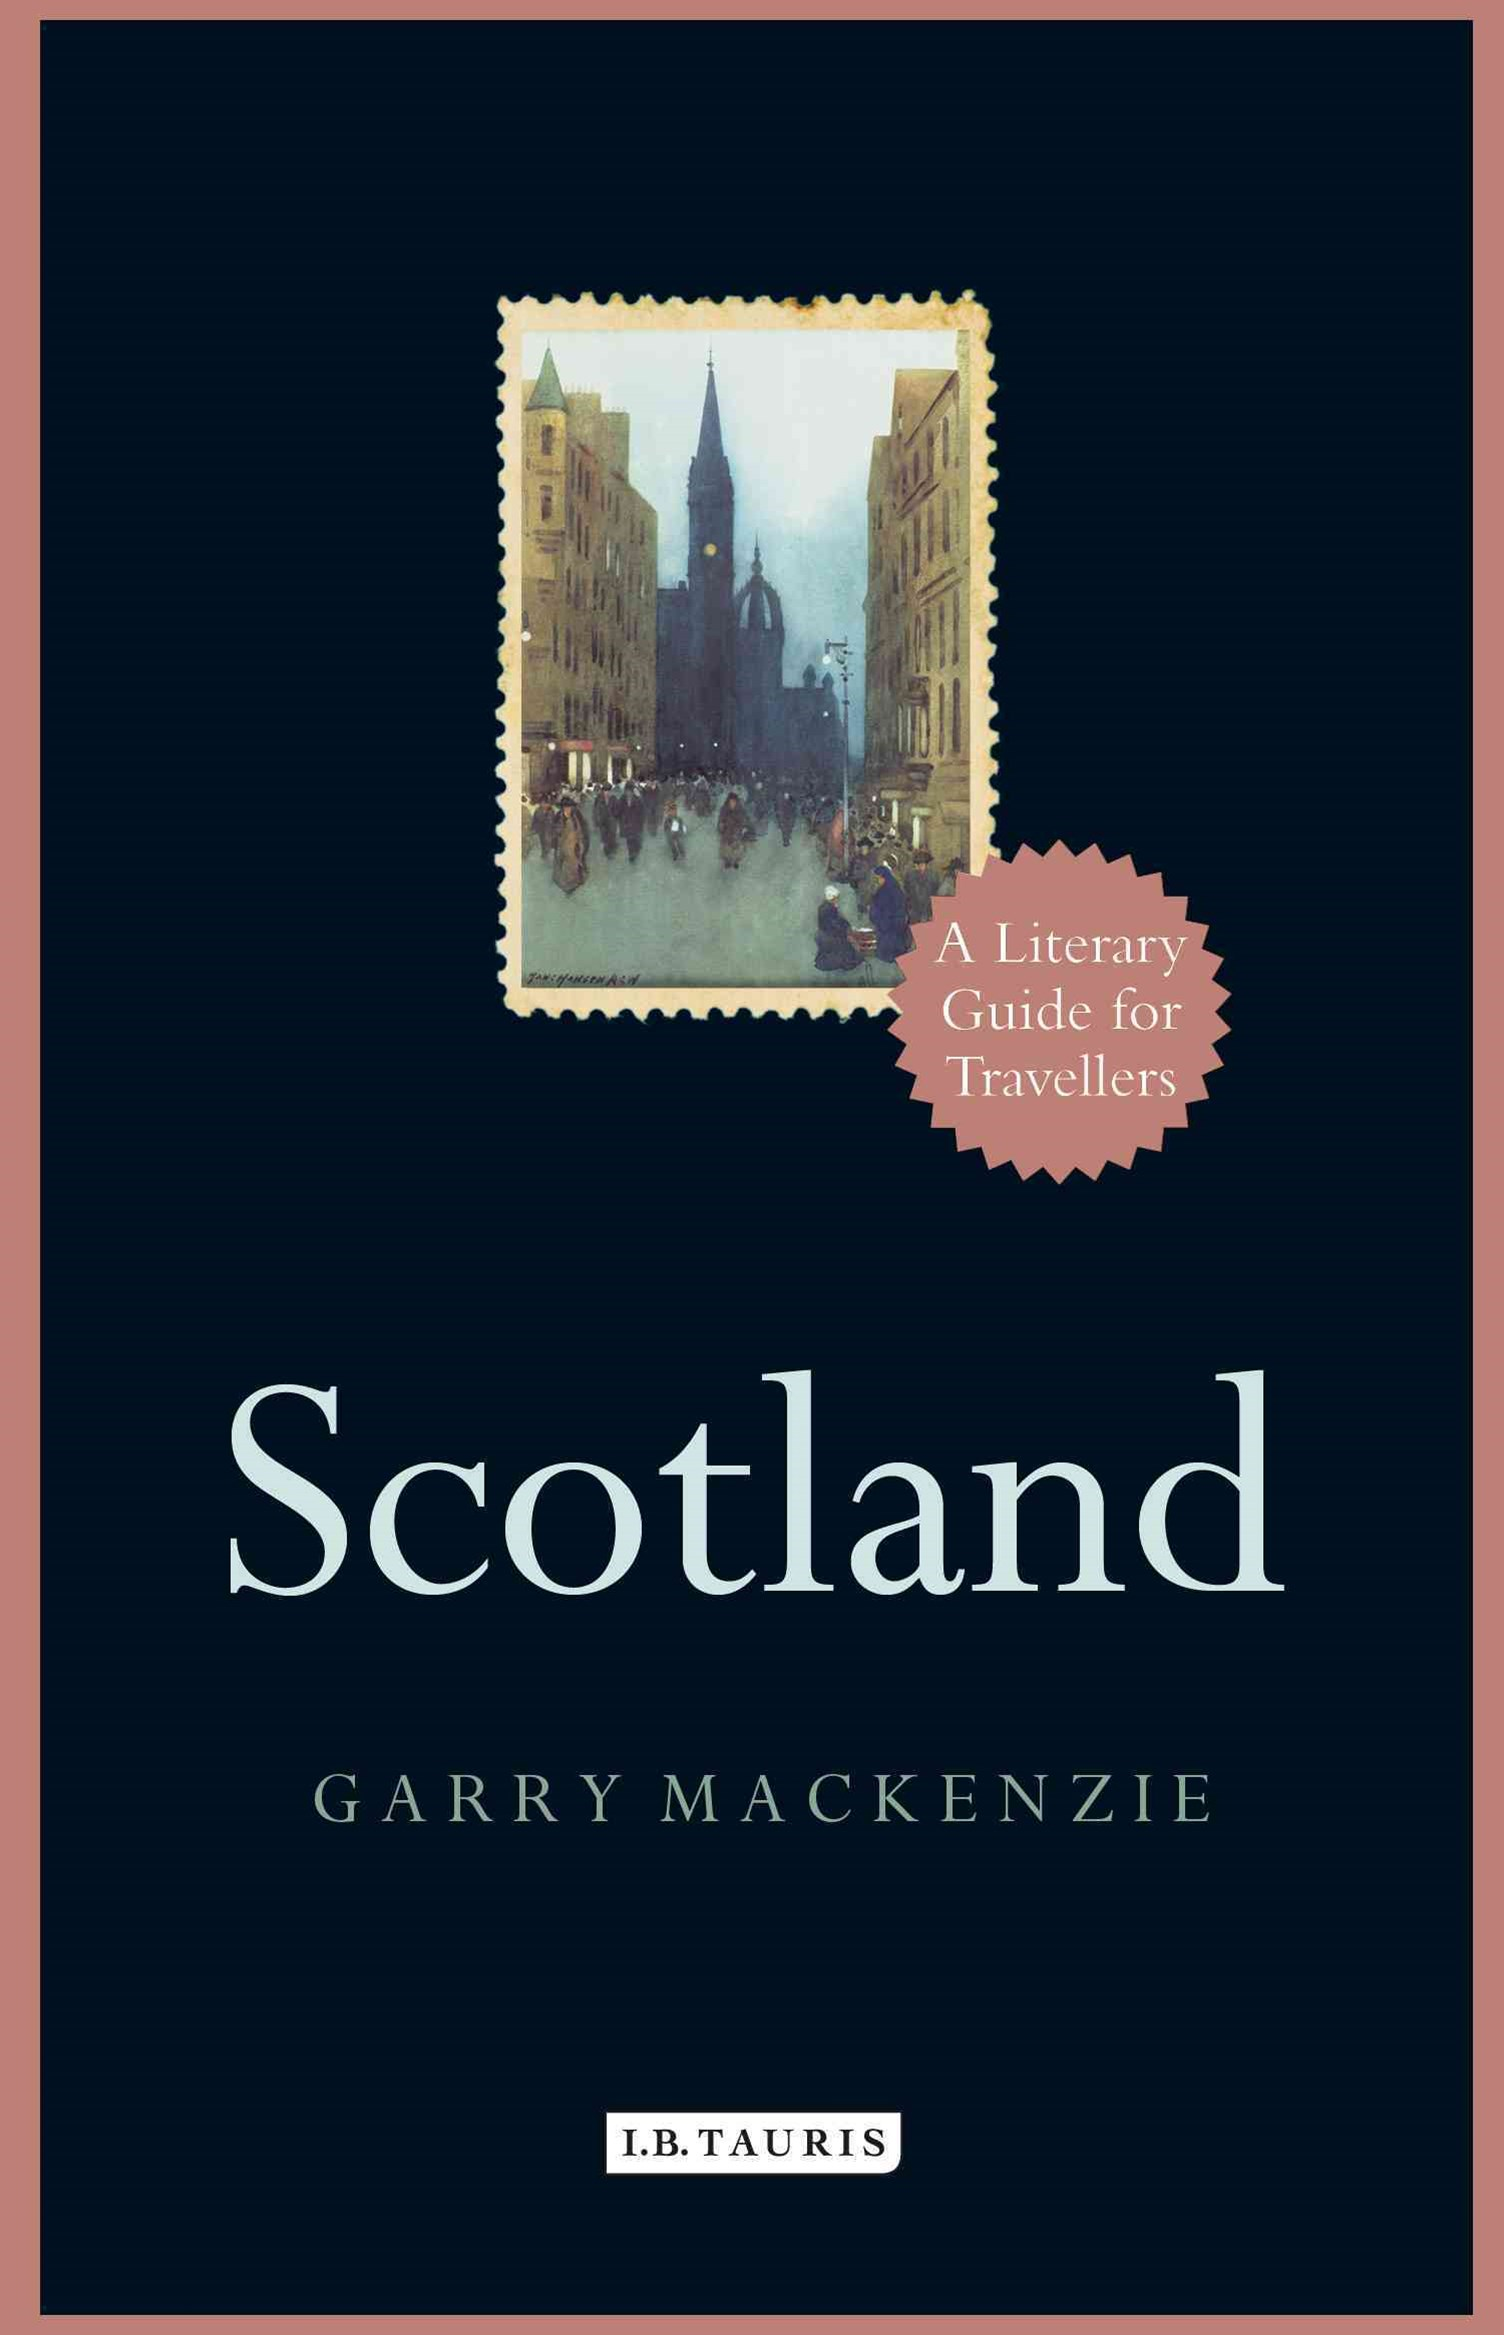 Scotland: A Literary Guide for Travellers